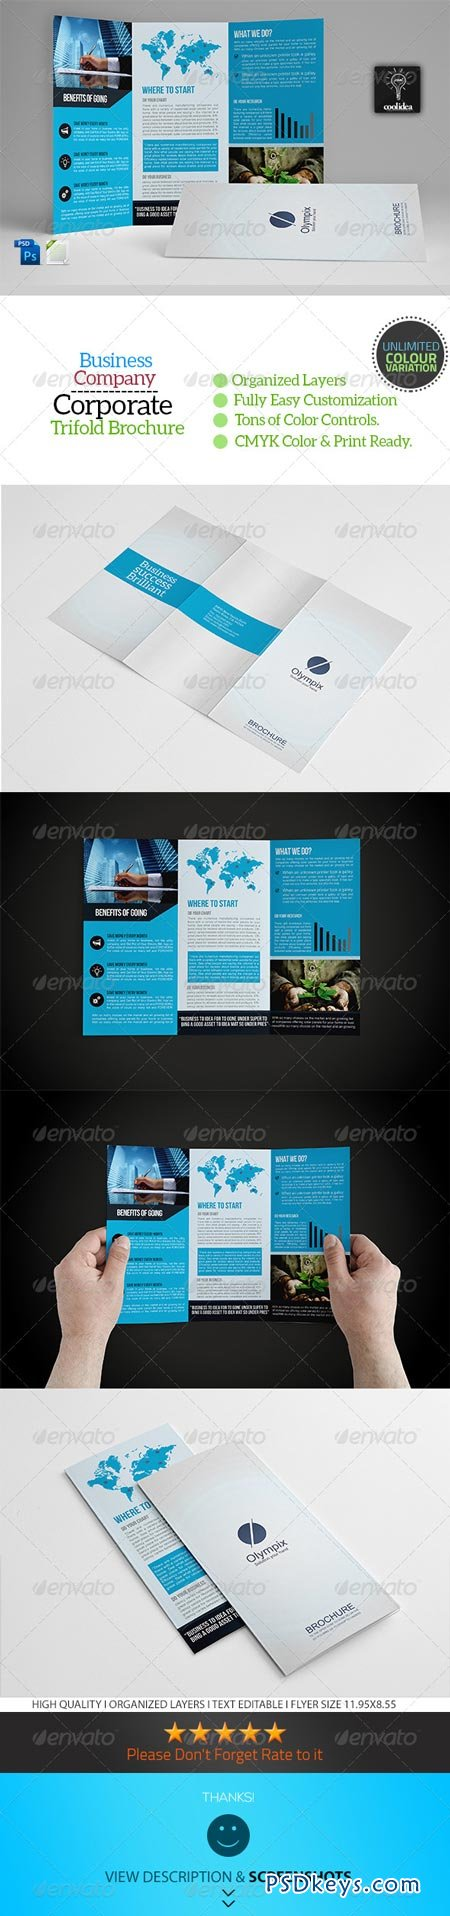 A Trifold Business Brochure Template Vol Free - A4 tri fold brochure template